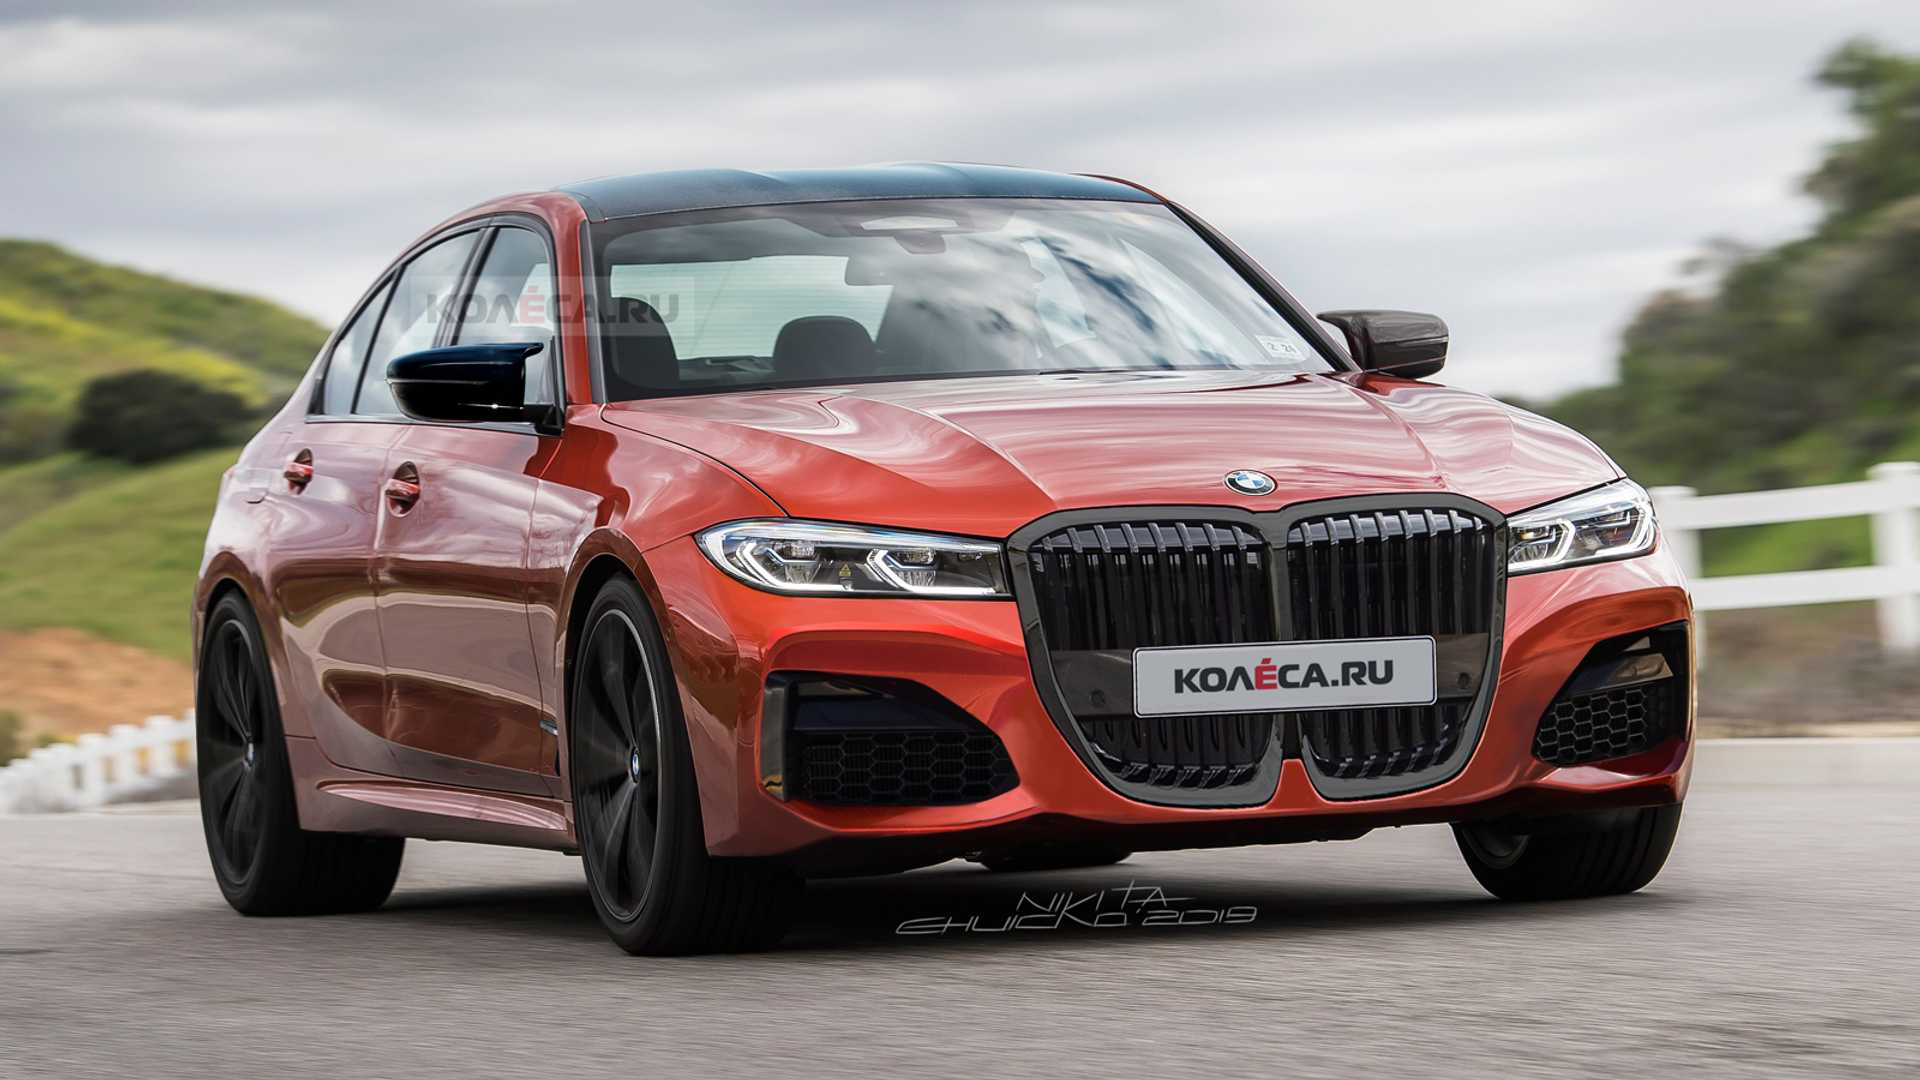 Could the new BMW M3 have more than 510 bhp?